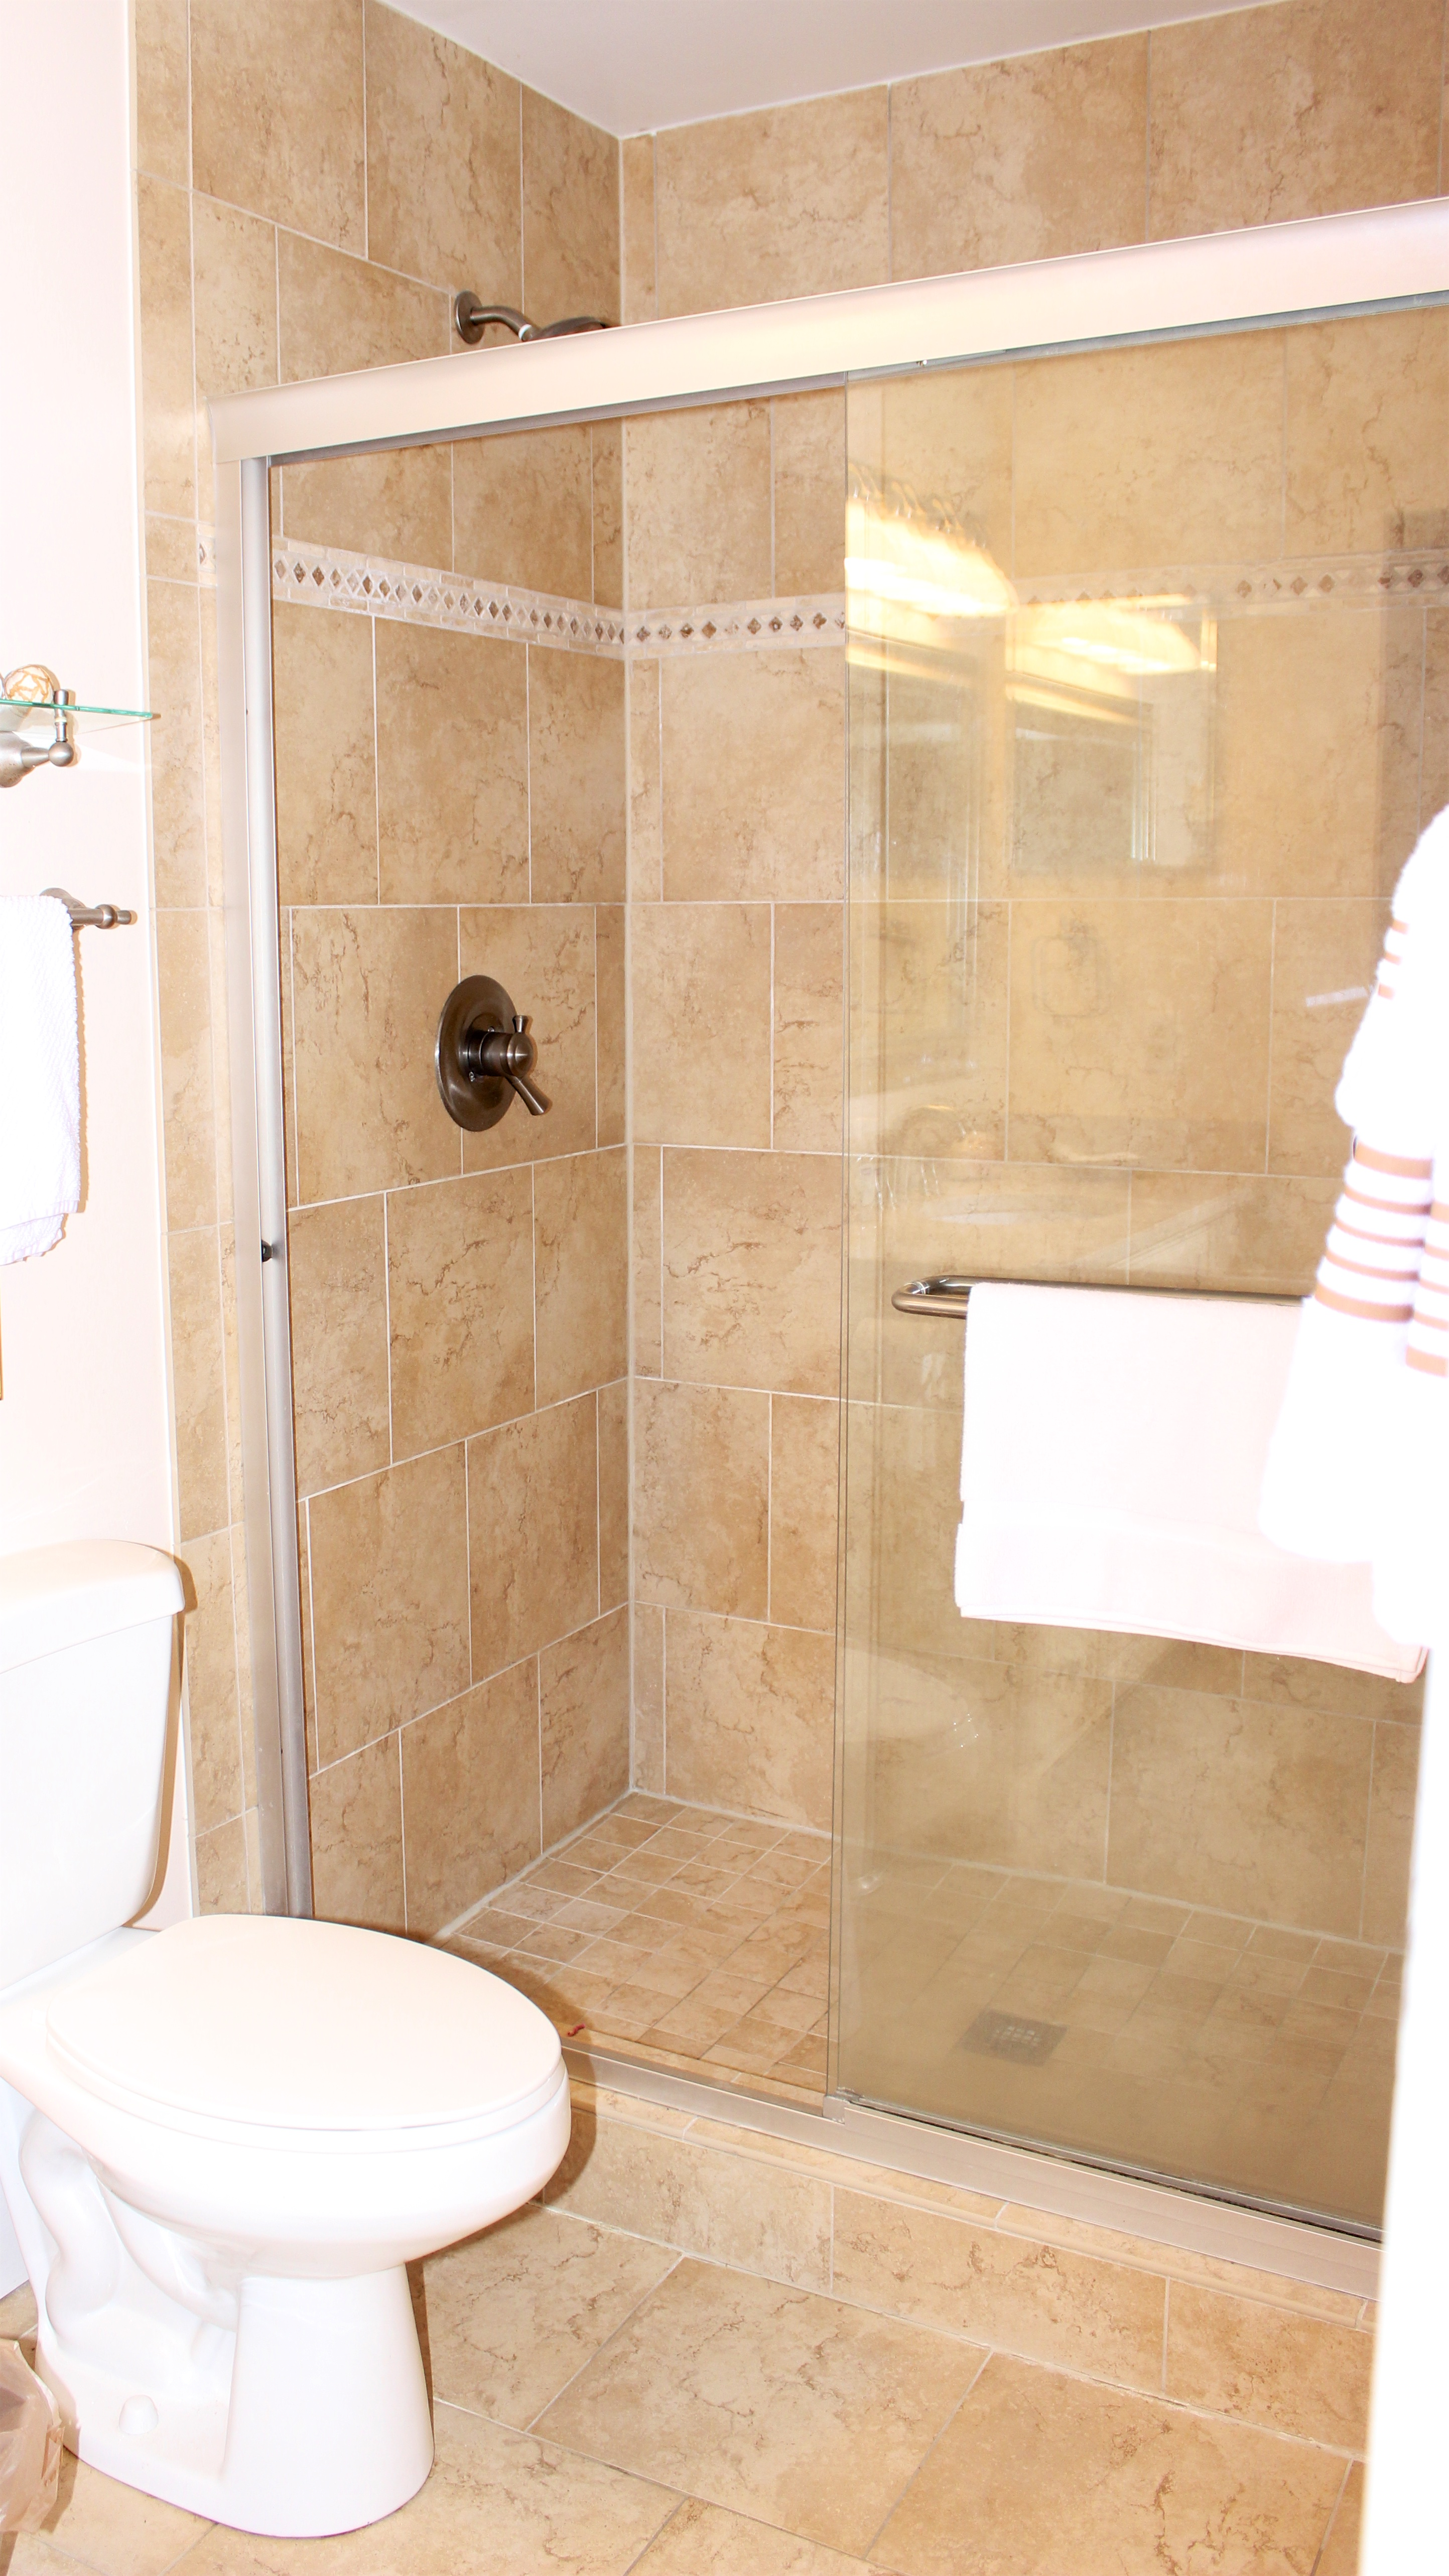 There is a large tiled shower with a glass door.